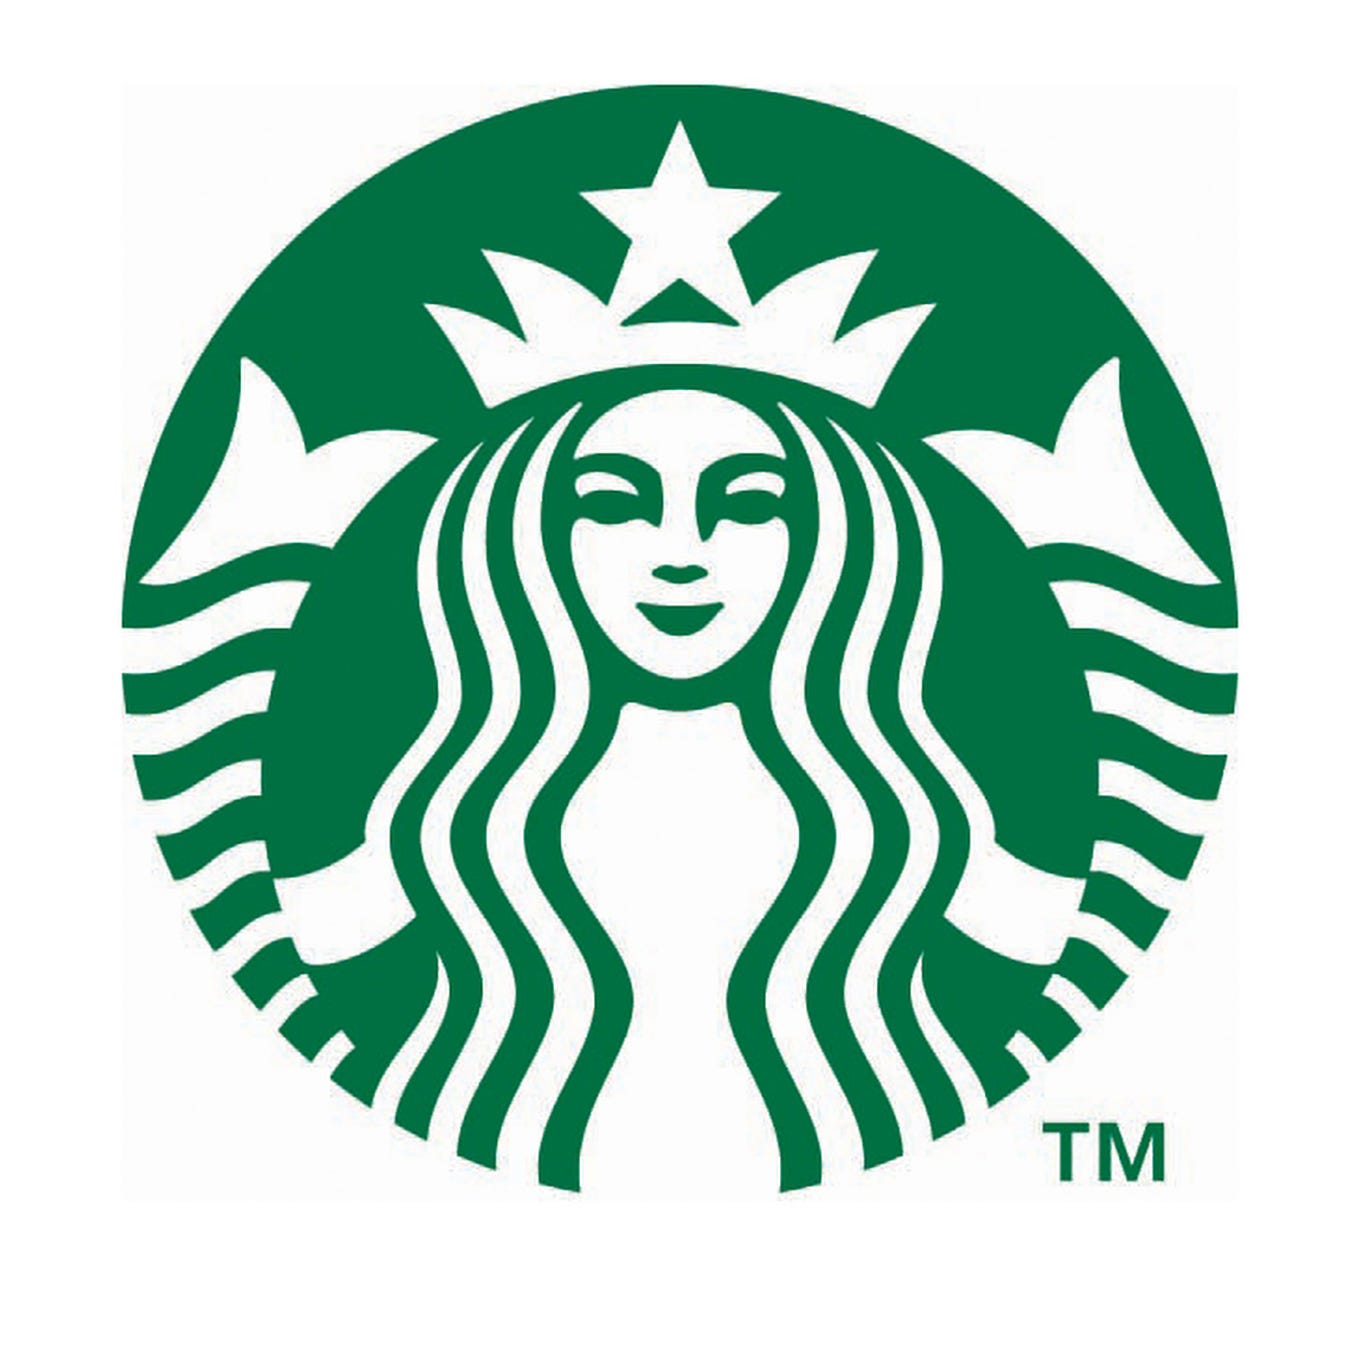 Starbucks sets its sights on Shippensburg Township